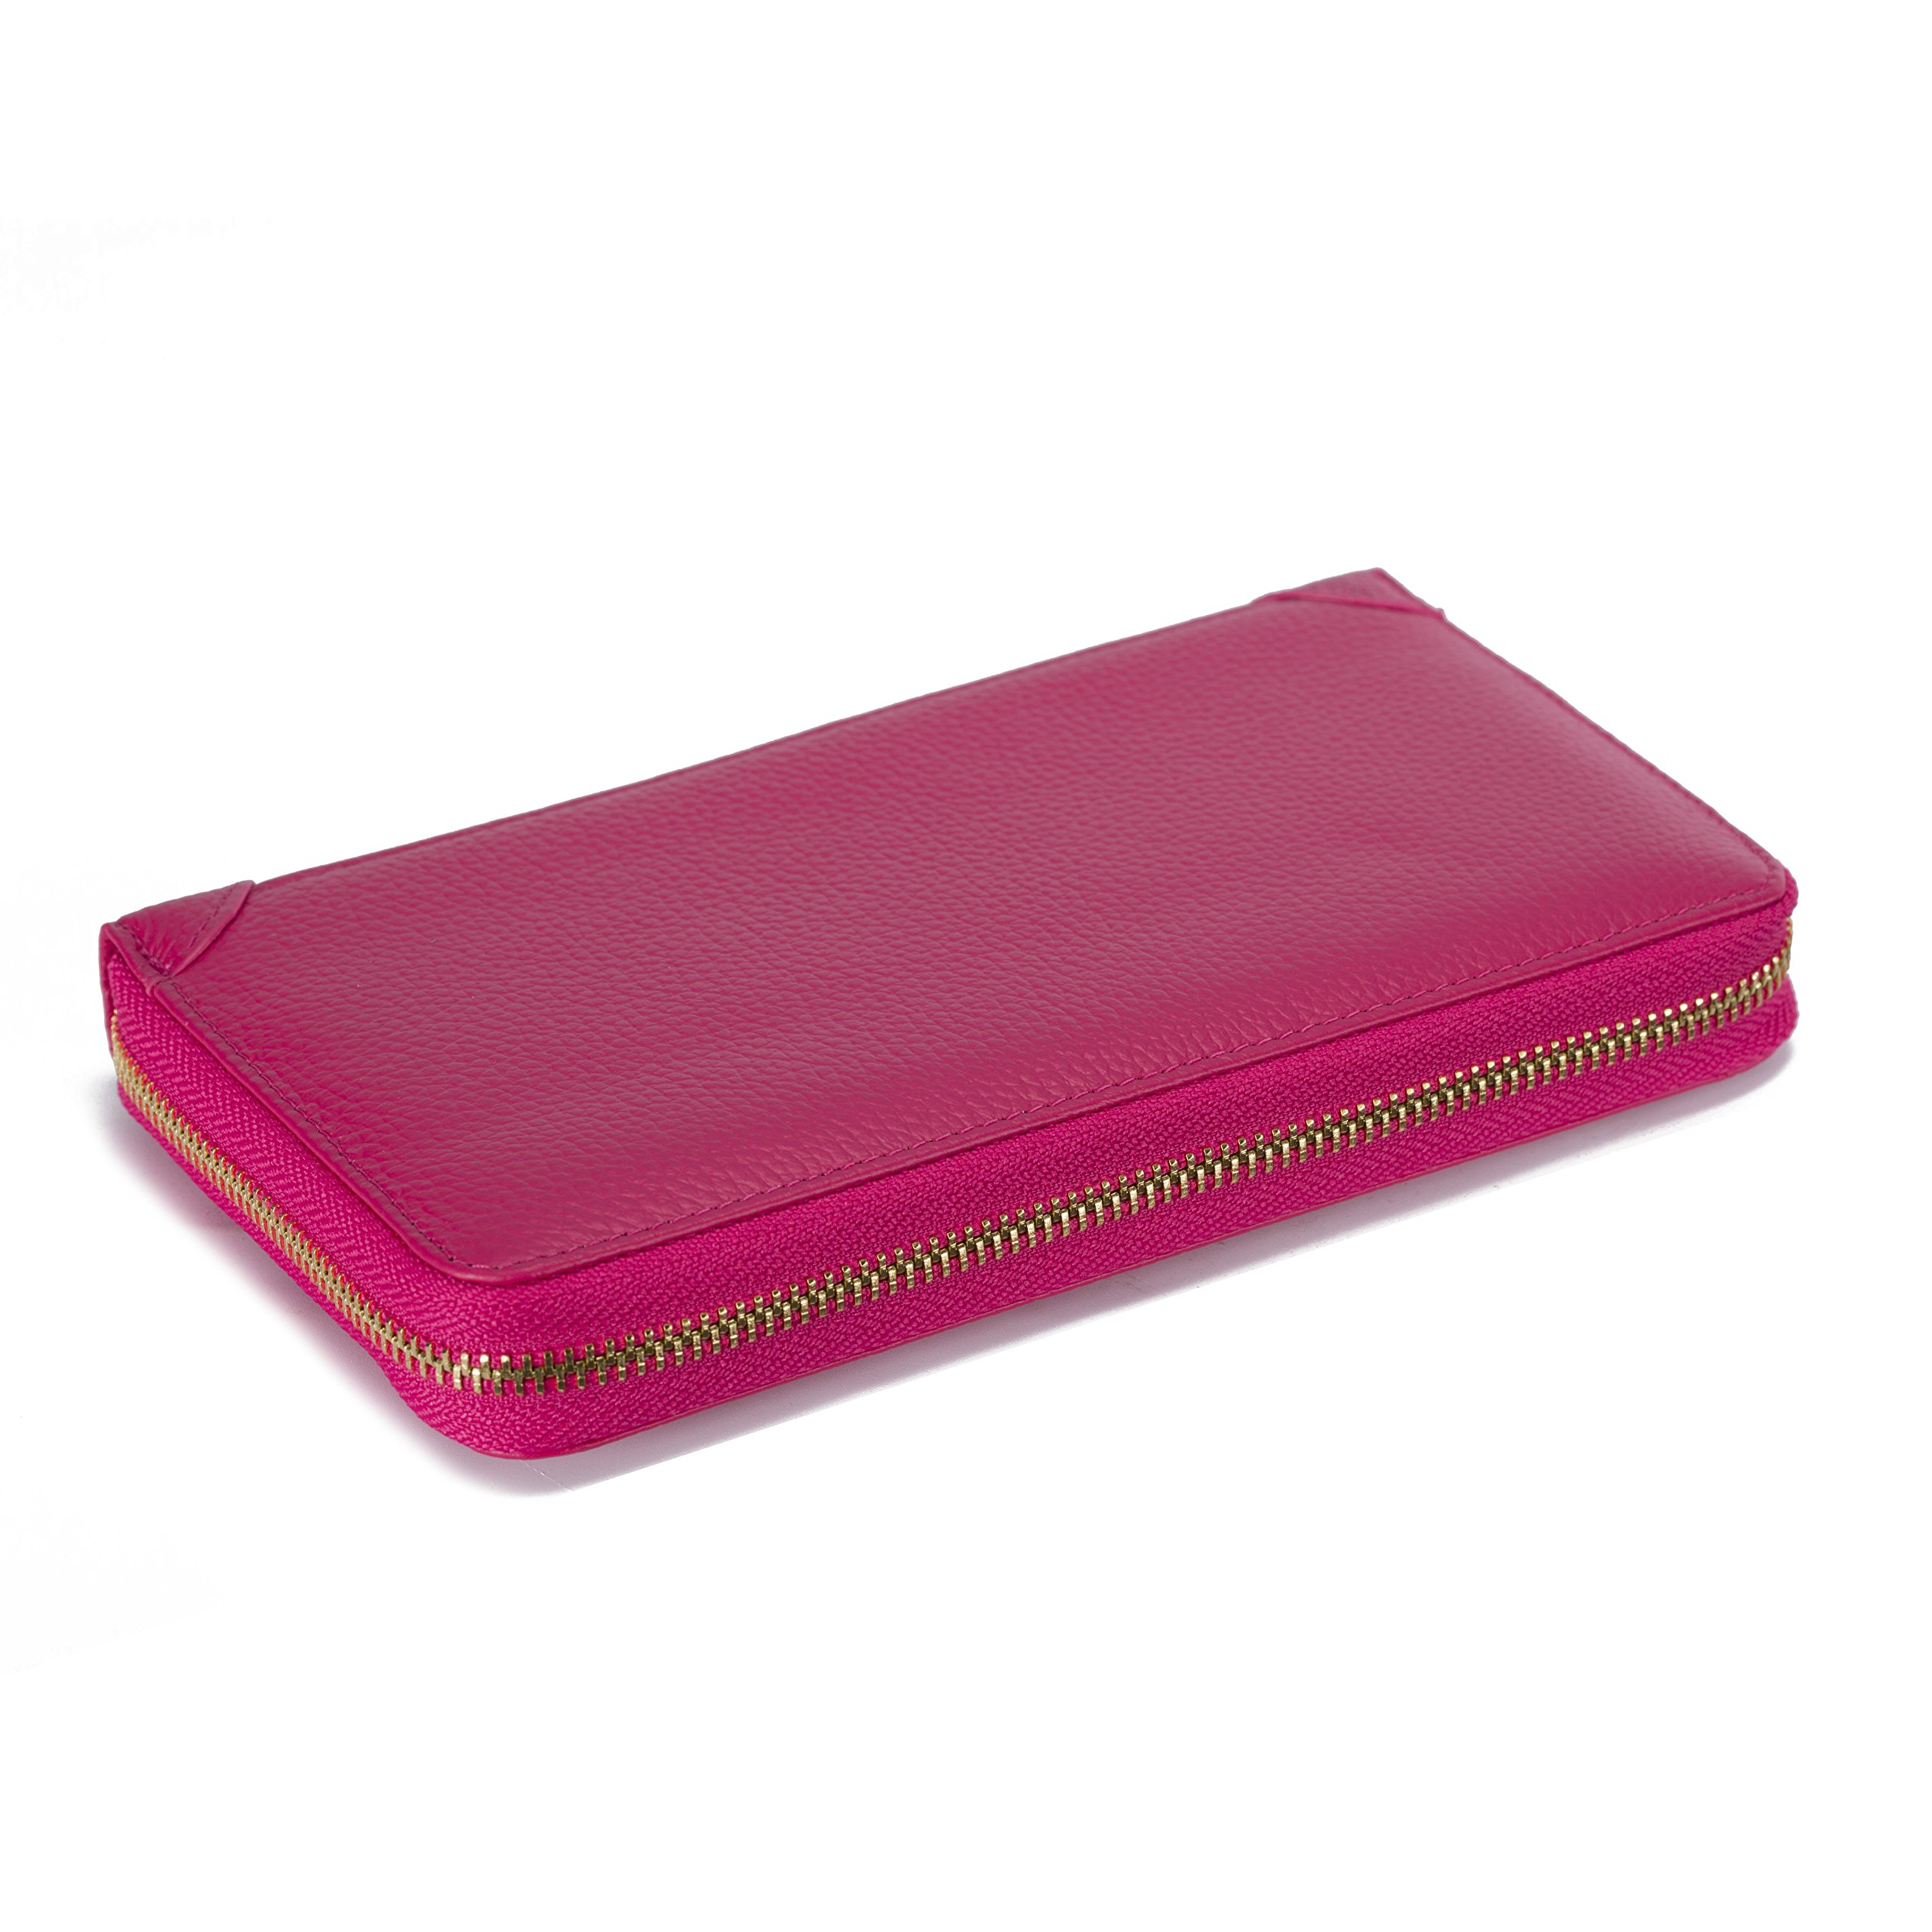 SafeCard Women's Credit Card Case Wallet 2 ID Window and Zipper Card Holder Purse (90 Card Rose red)